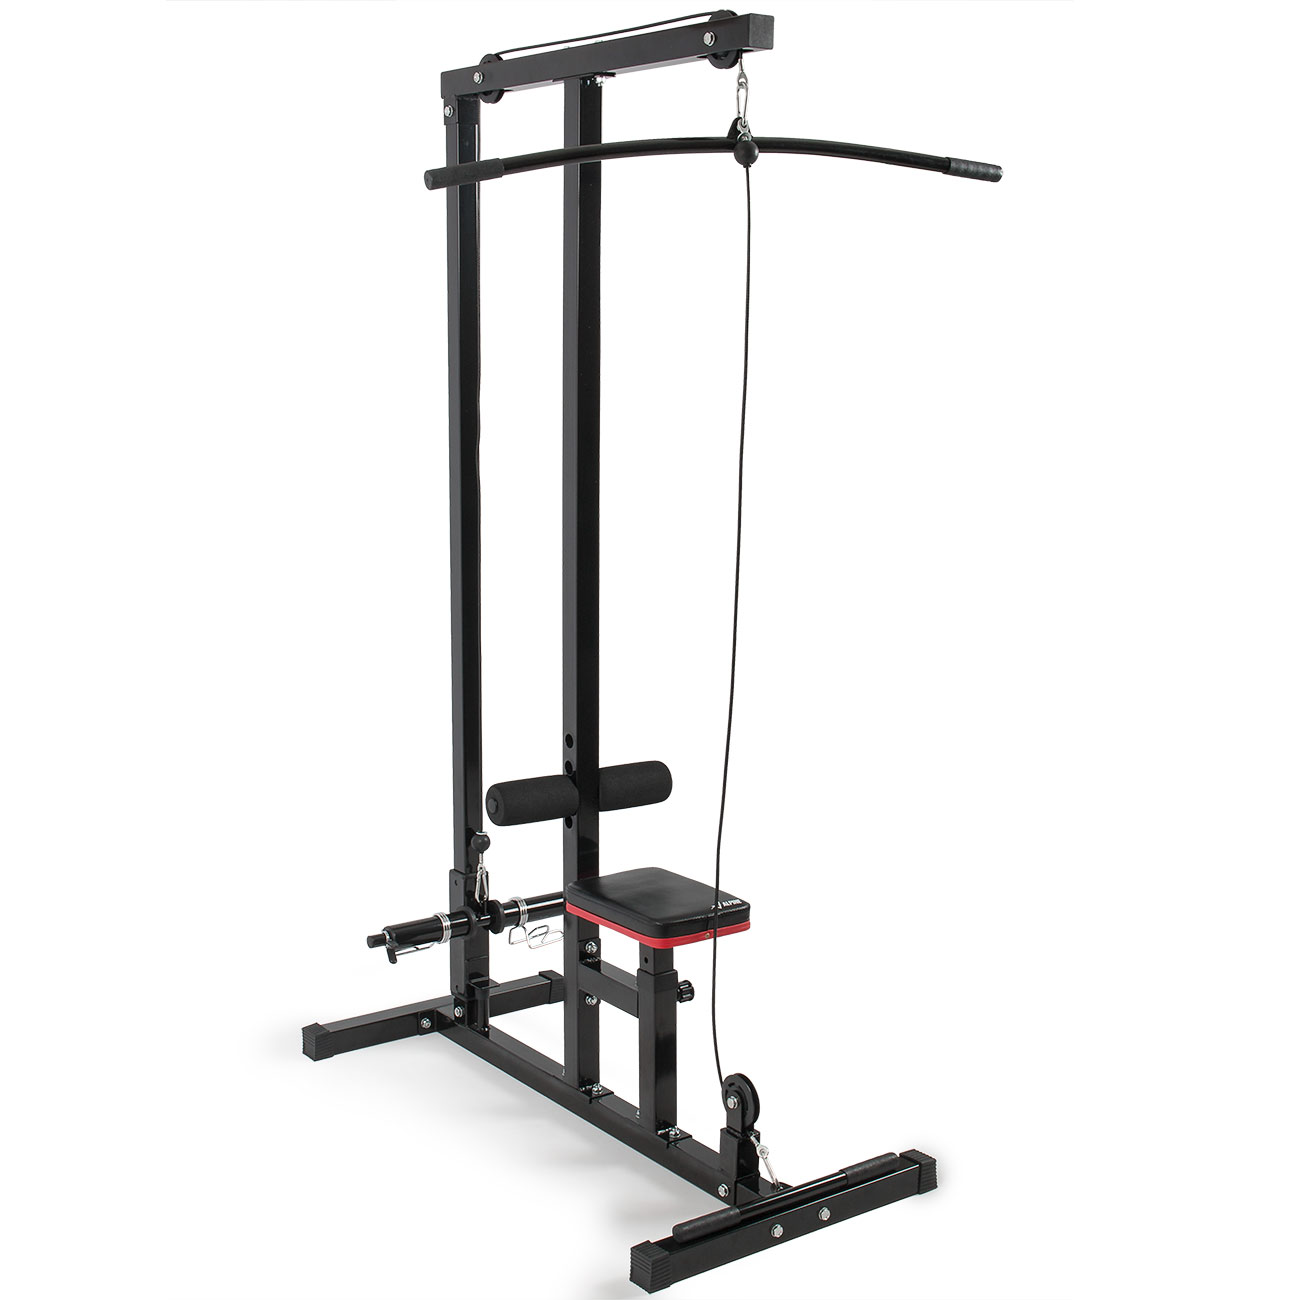 Low Cable Pull : Akonza lat machine low row cable pull down fitness handle